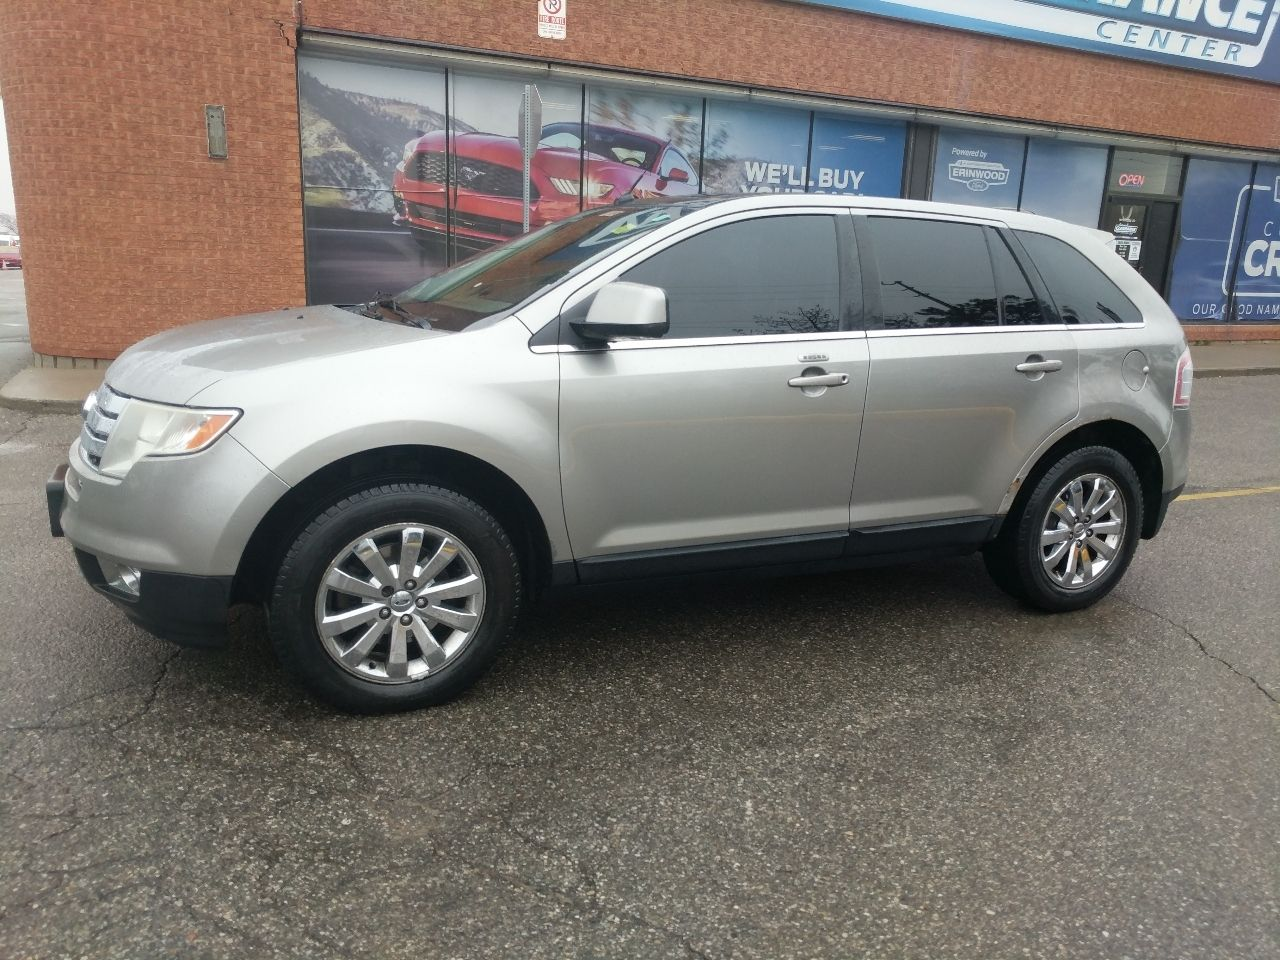 2008 Ford Edge Image